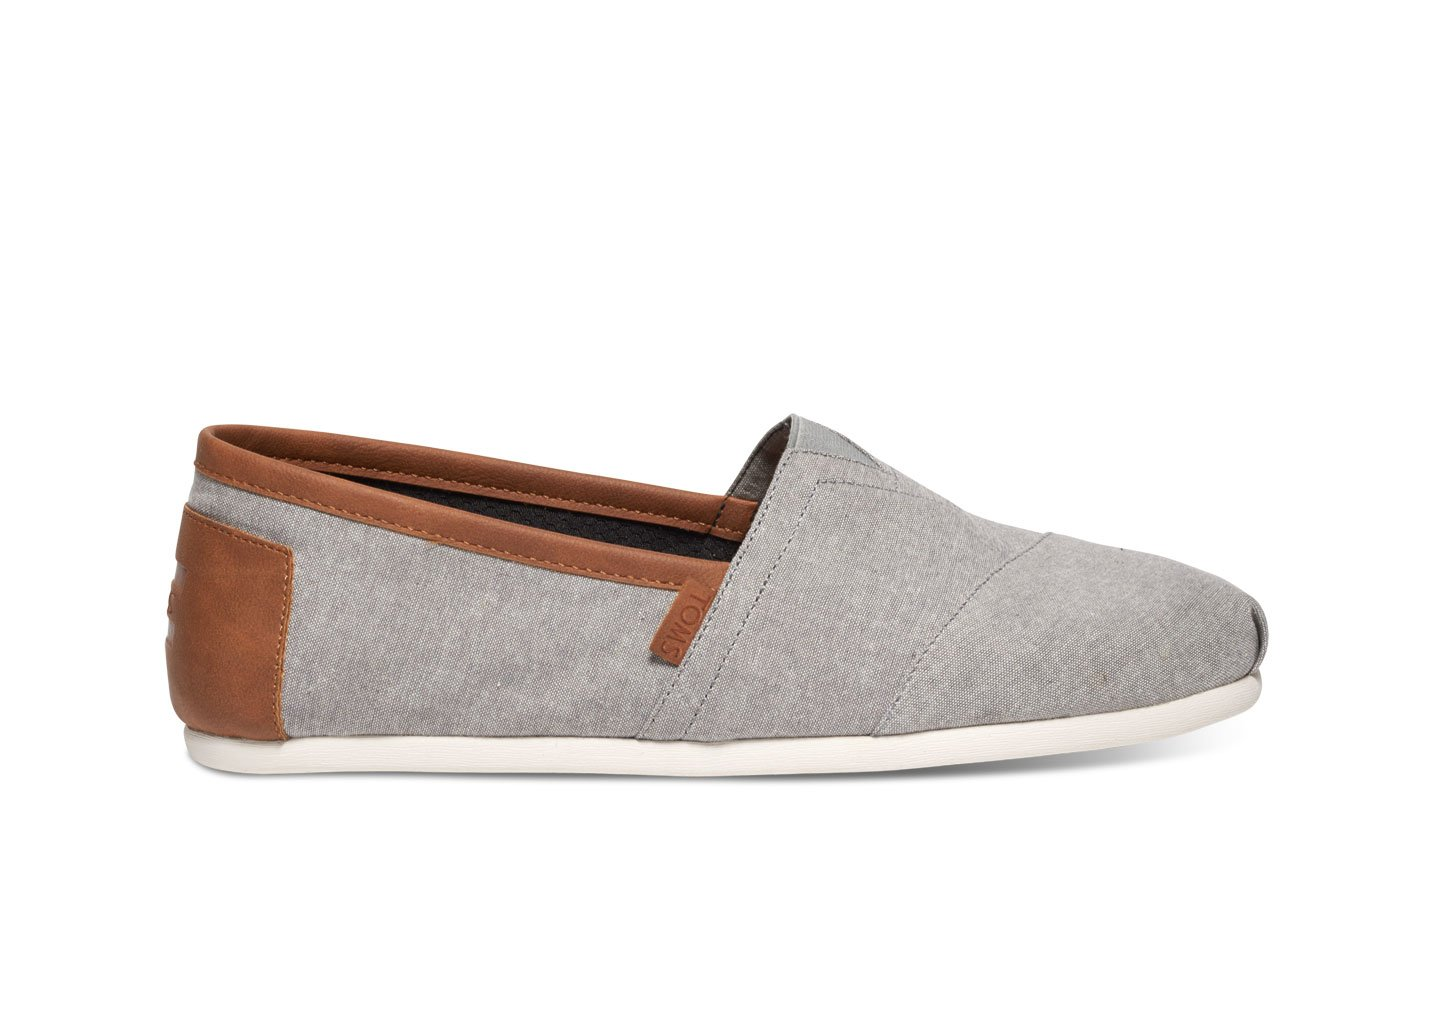 TOMS Men's Classic Canvas Slip-On, Frost Grey Chambray - 10 D(M) US